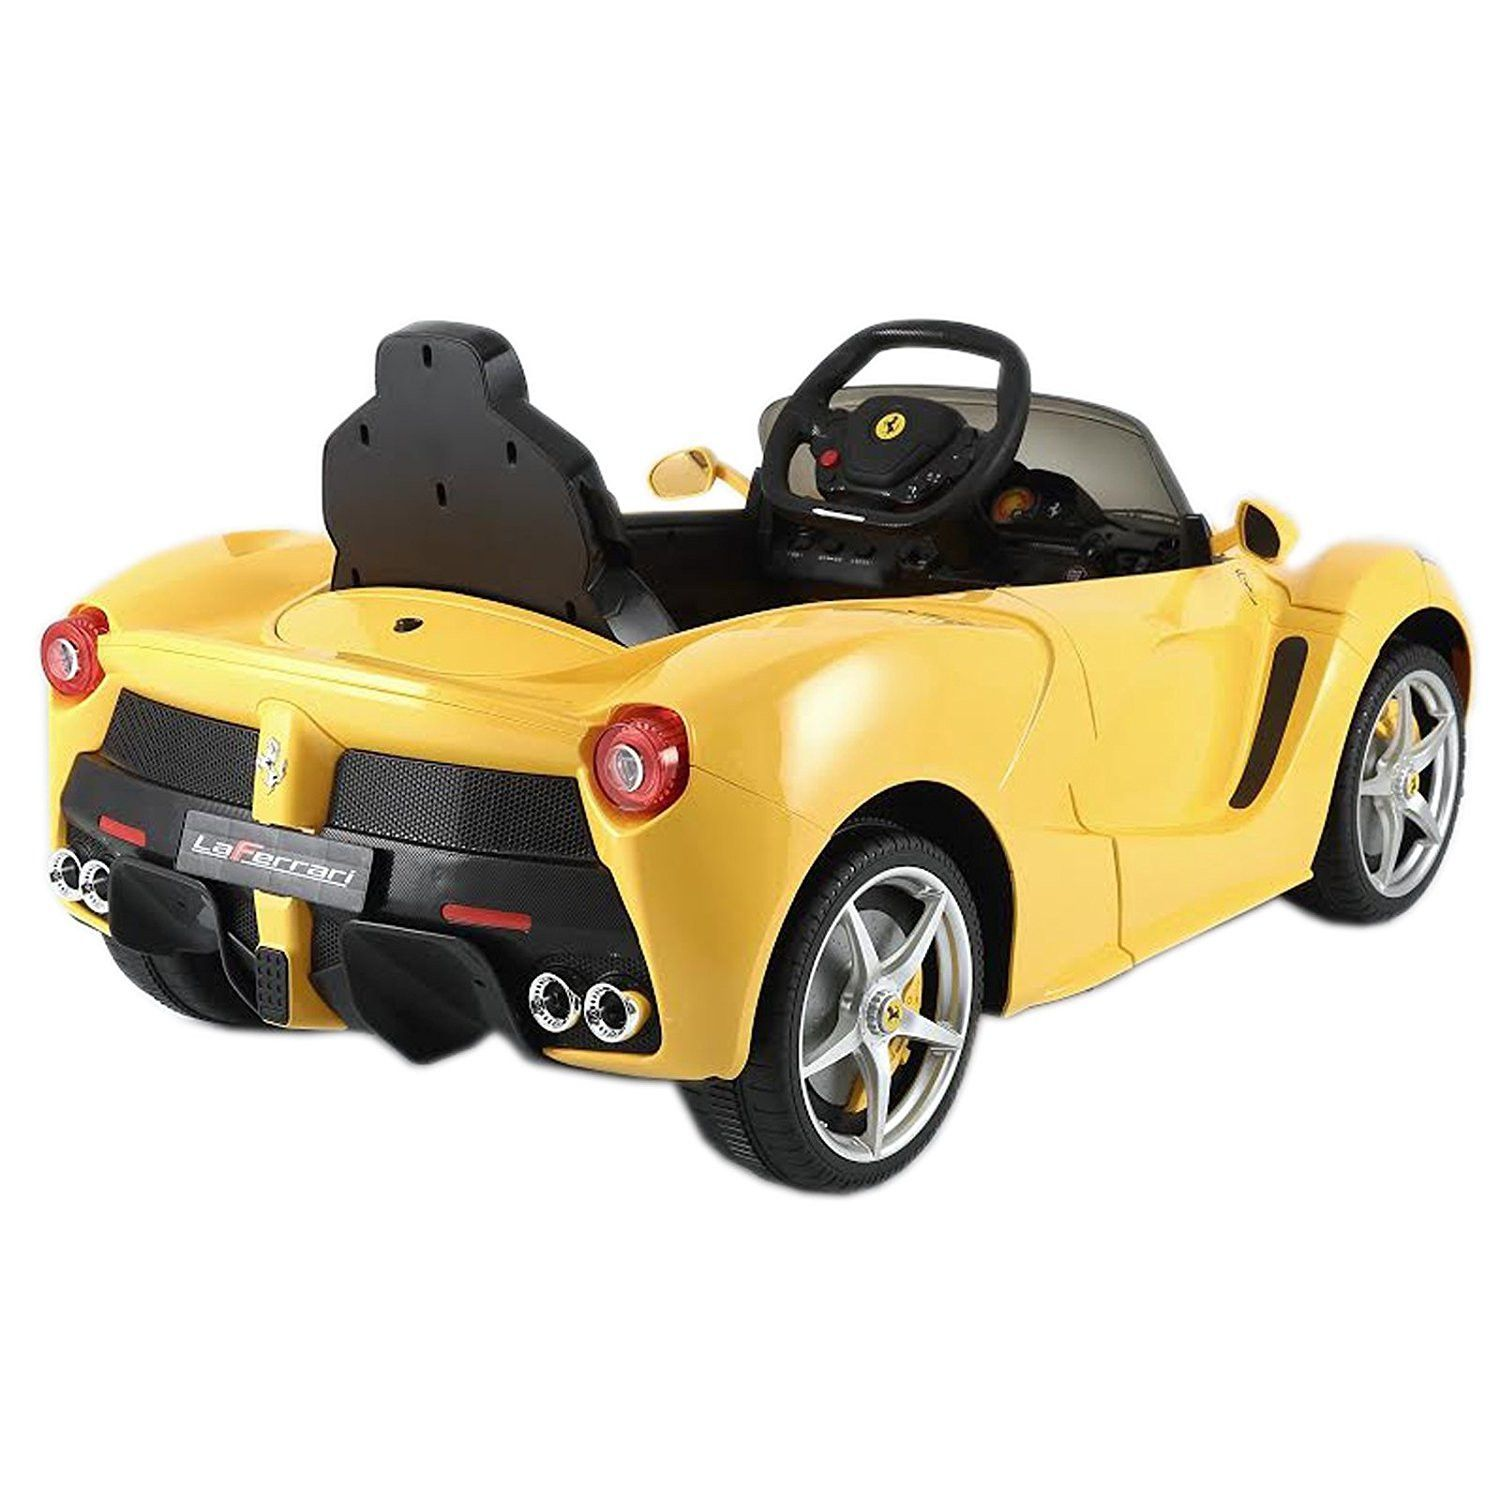 Licensed Ferrari La 12v Ride On Car Yellow Toy Cars For Kids One Seater Car Classic Cars